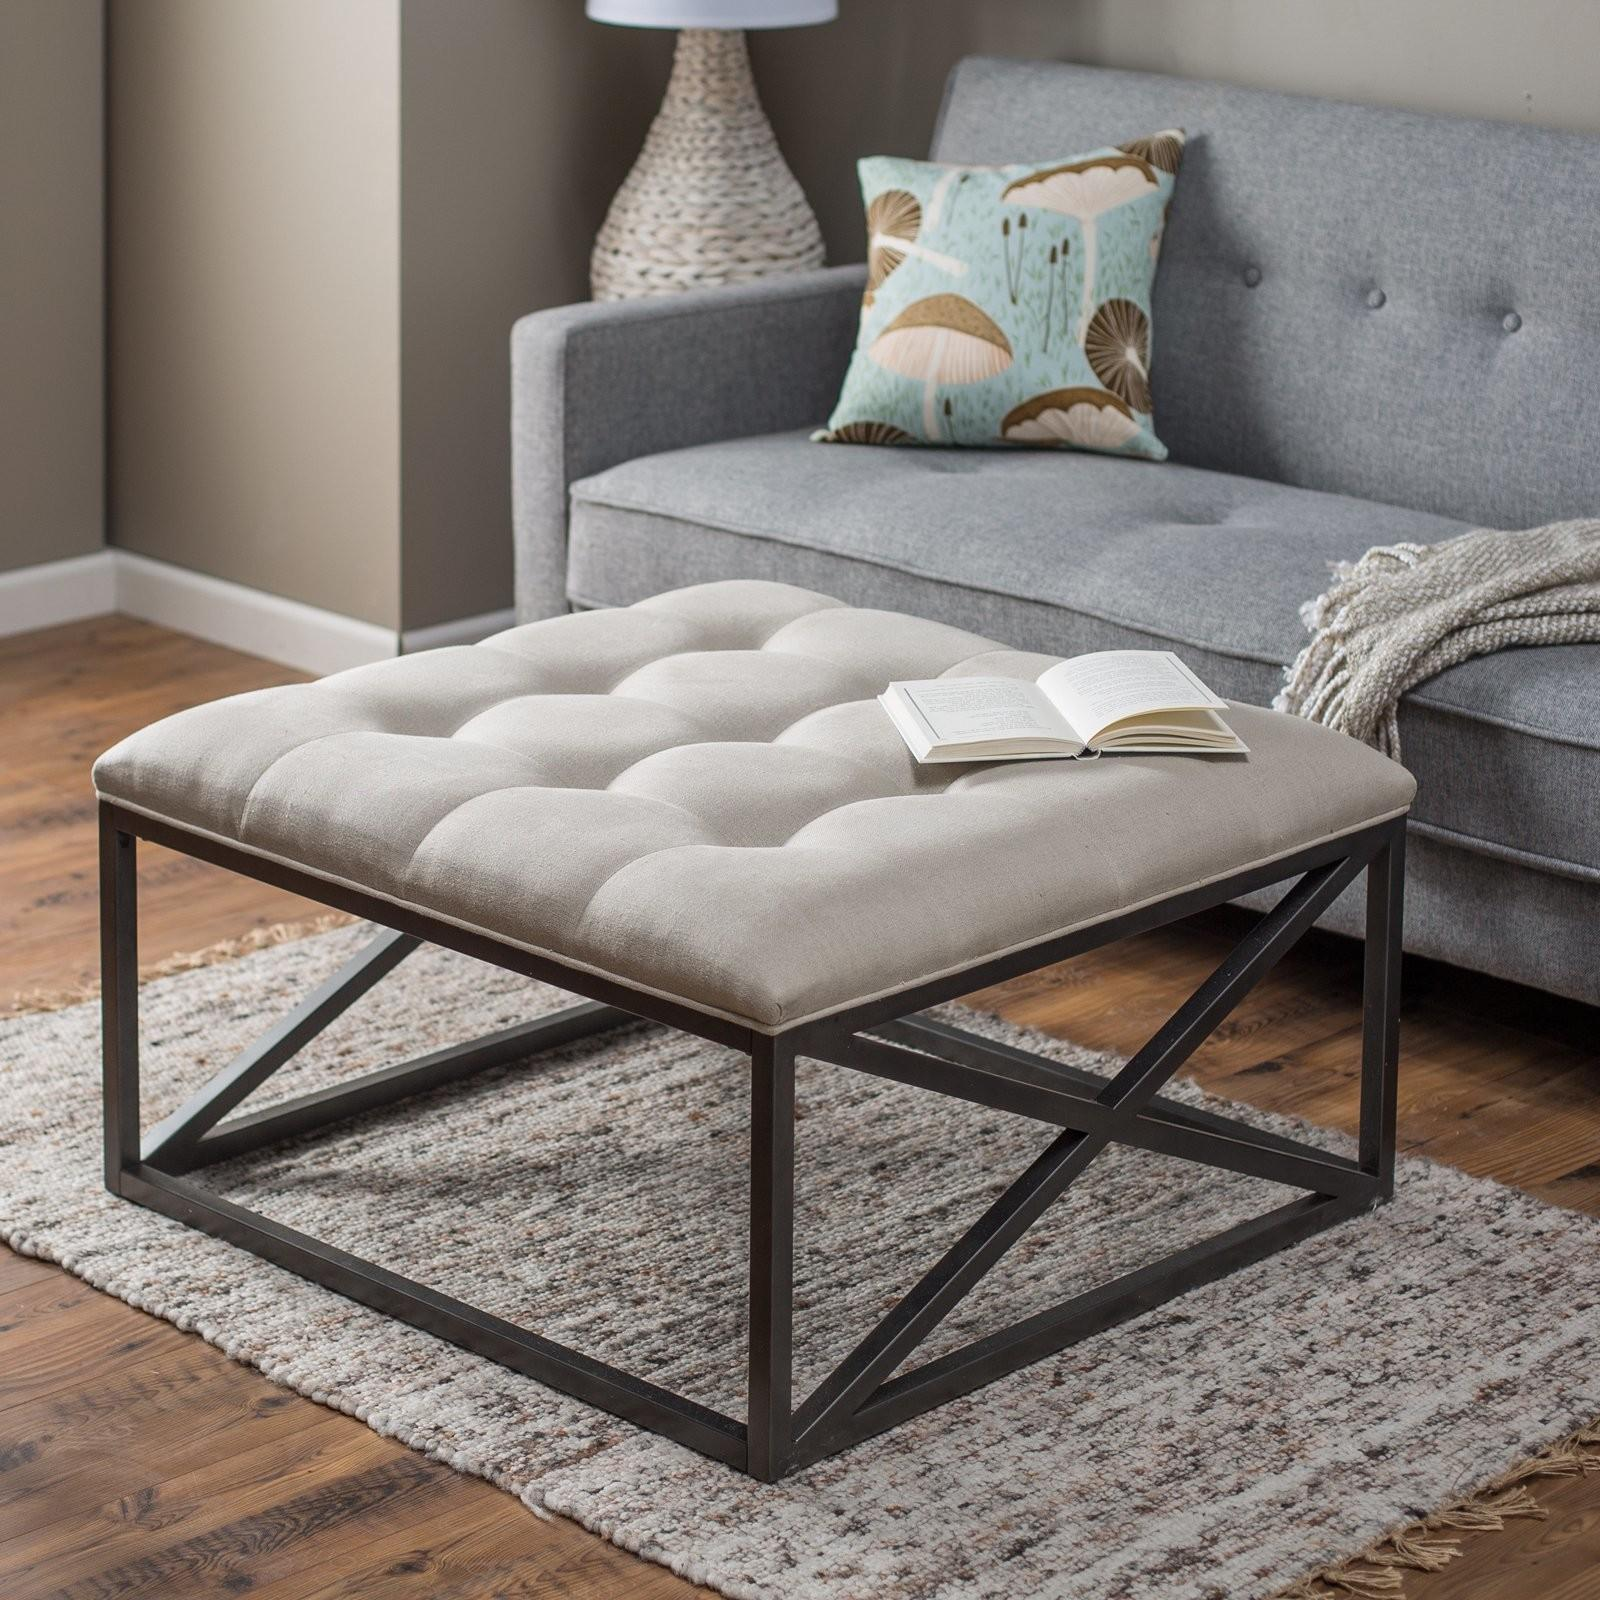 Ultimate Tufted Ottoman Coffee Table Decoration Ideas